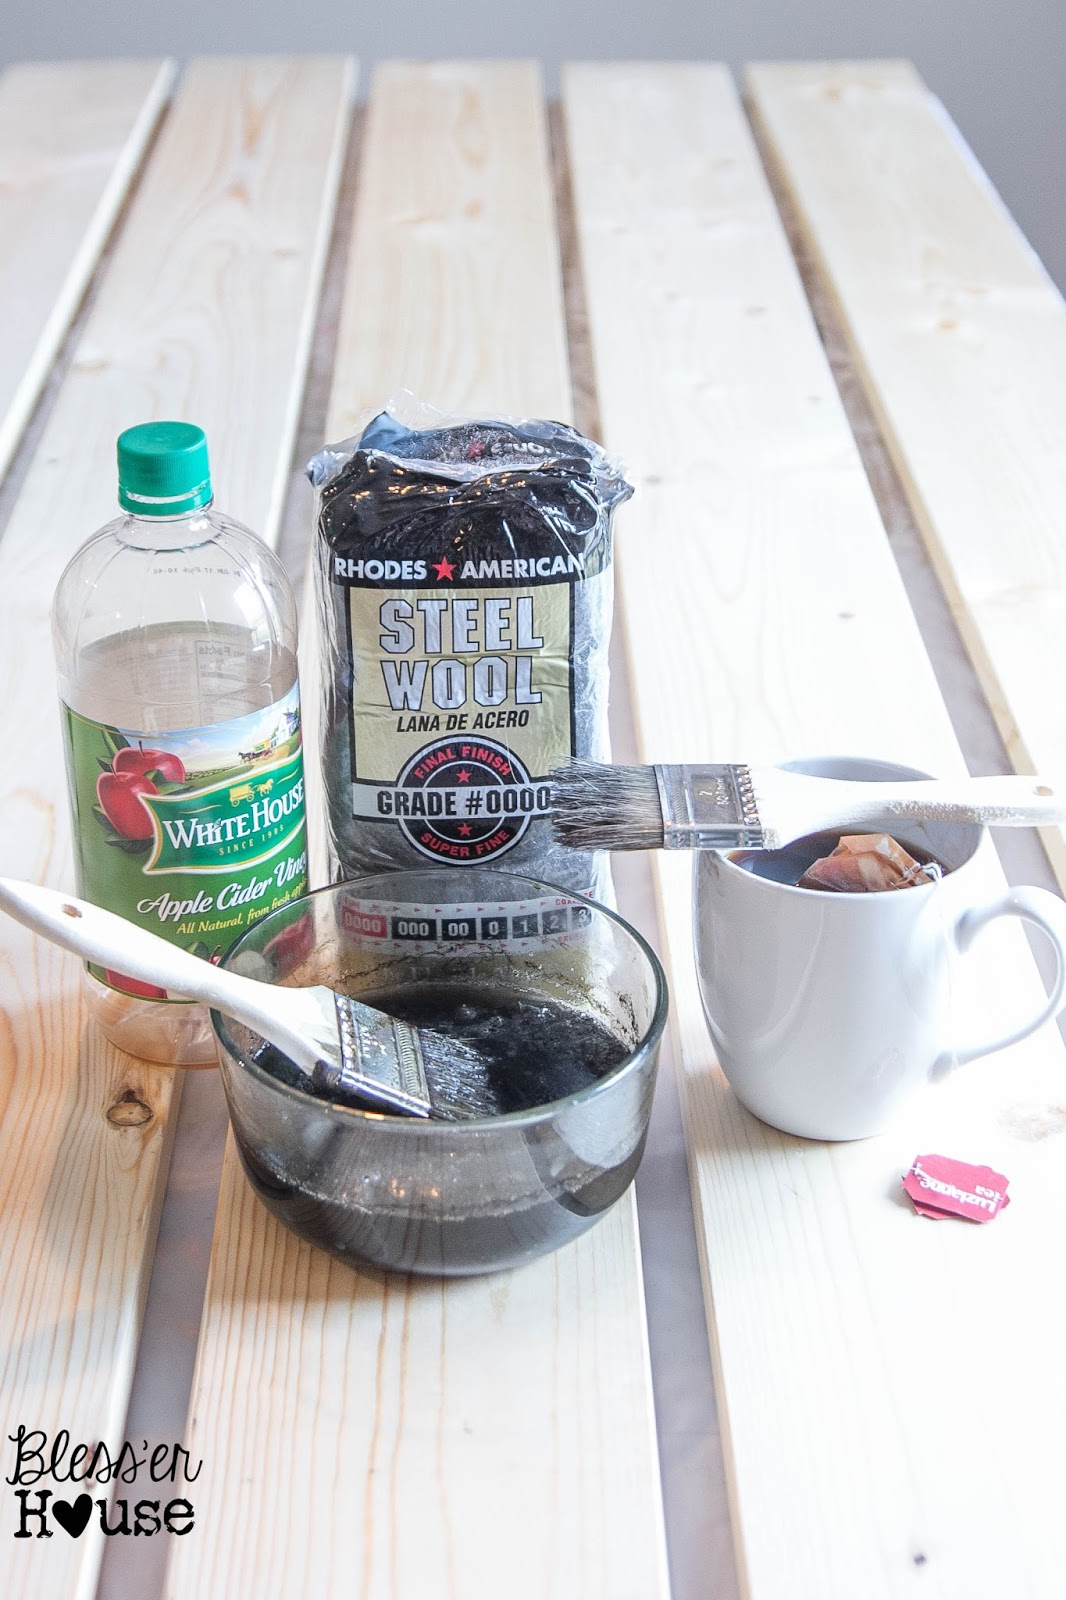 The ingredients you need for this DIY all natural wood stain method are steel wool pads, some black tea, apple cider vinegar and a few paint brushes.